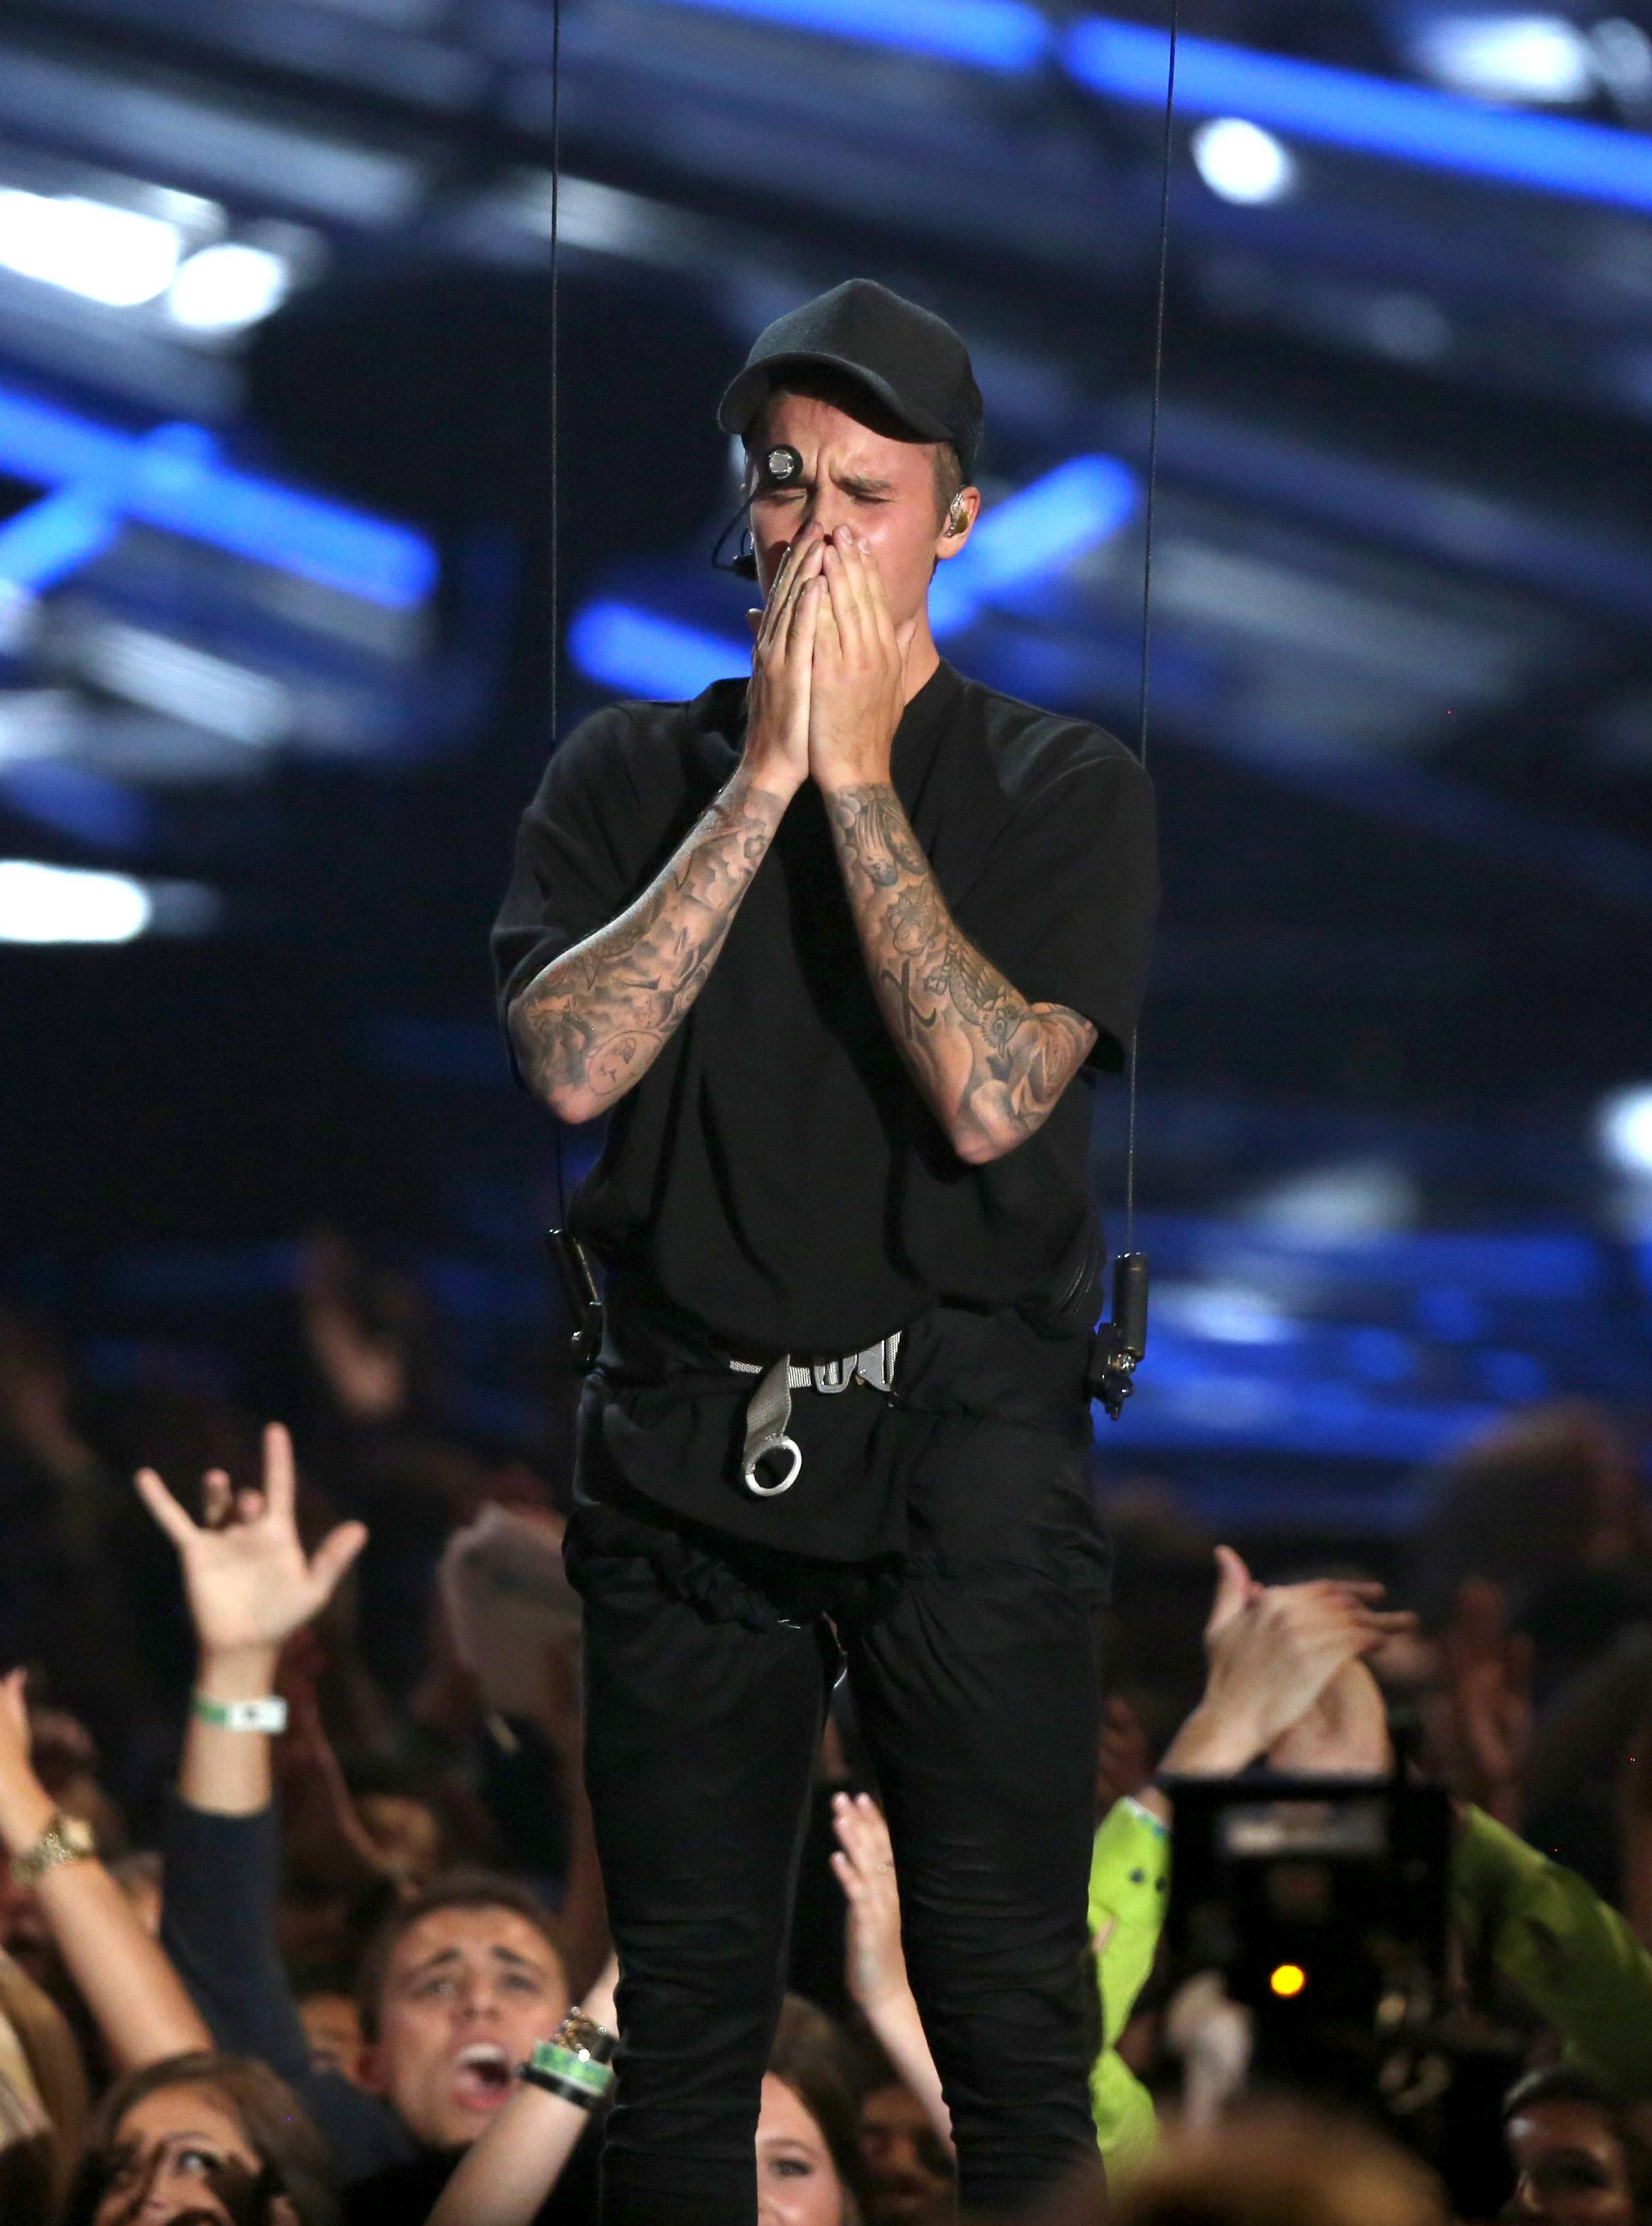 Bad Blood & Bieber Tears: The 2015 VMAs' Most Memorable Moments